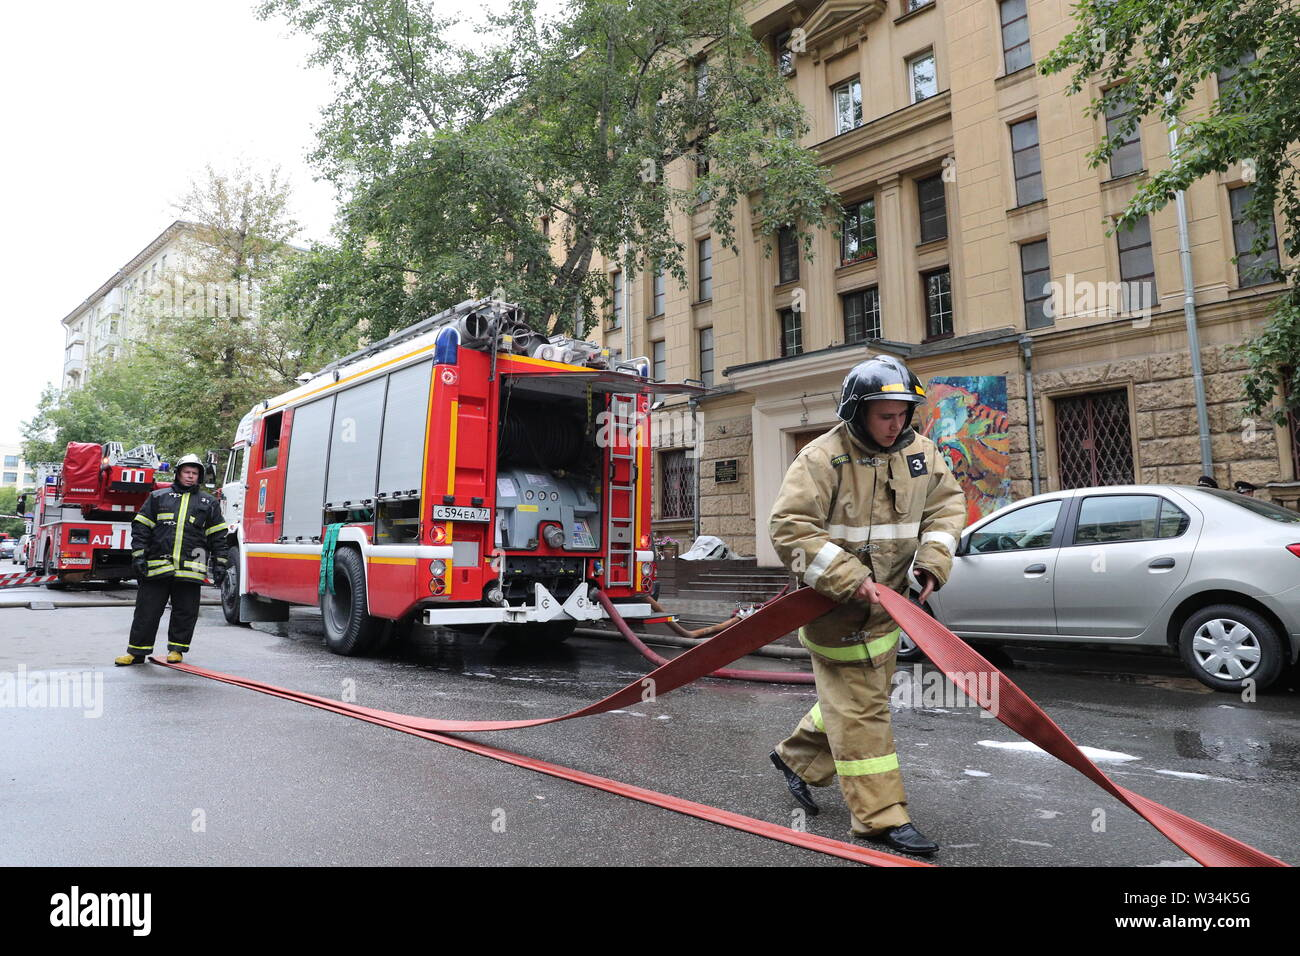 Moscow, Russia. 12th July, 2019. MOSCOW, RUSSIA - JULY 12, 2019: Firefighters by the building of the Russian State Archive of Literature and Art hit by fire. The 150 sq.m. fire on the 4th floor of the building has been extinguished. Gavriil Grigorov/TASS Credit: ITAR-TASS News Agency/Alamy Live News - Stock Image